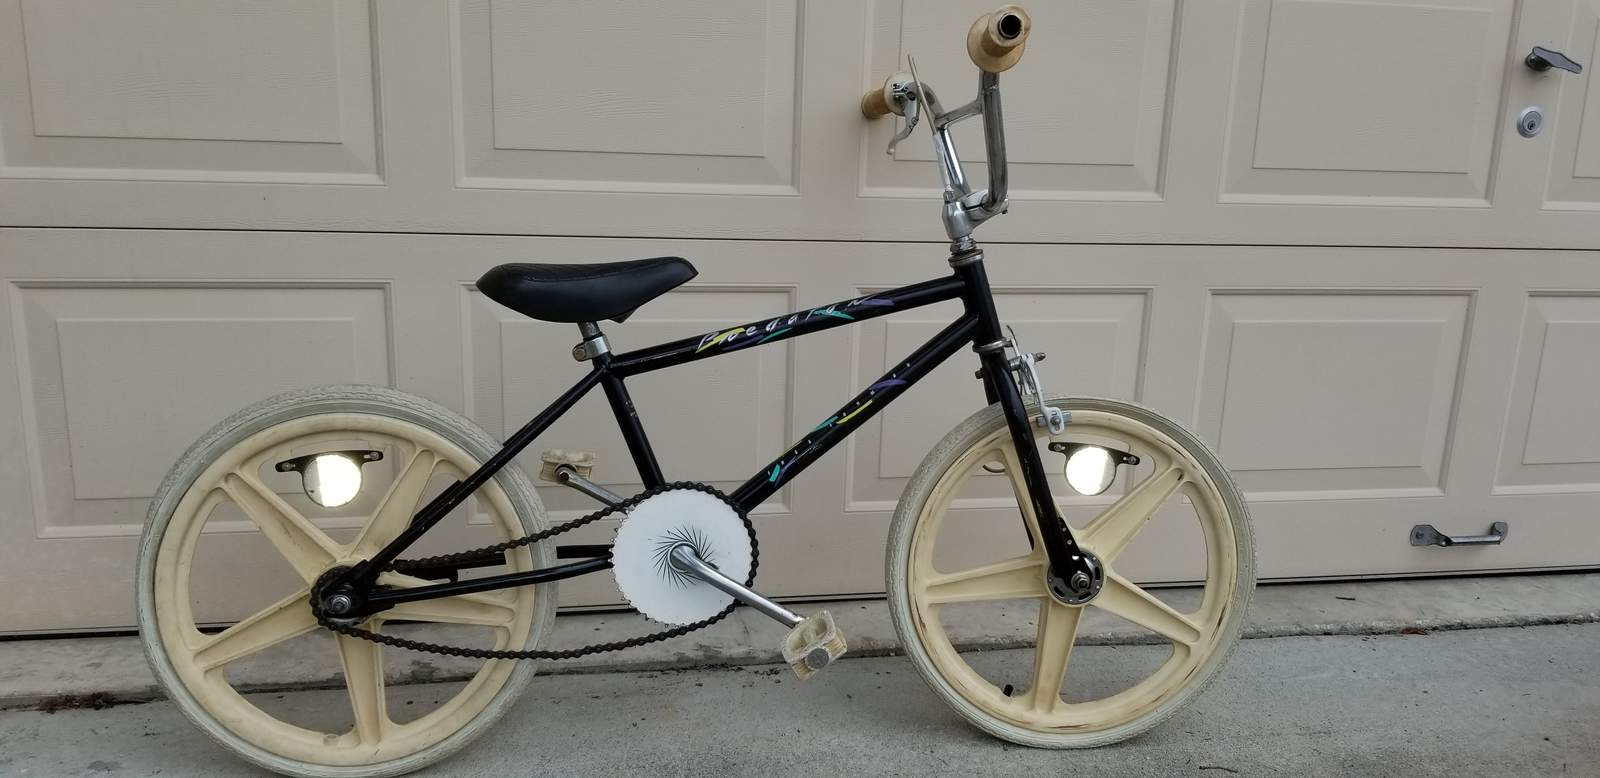 http://uploads.bmxmuseum.com/user-images/248512/20171226_1633315a5ac28348.jpg